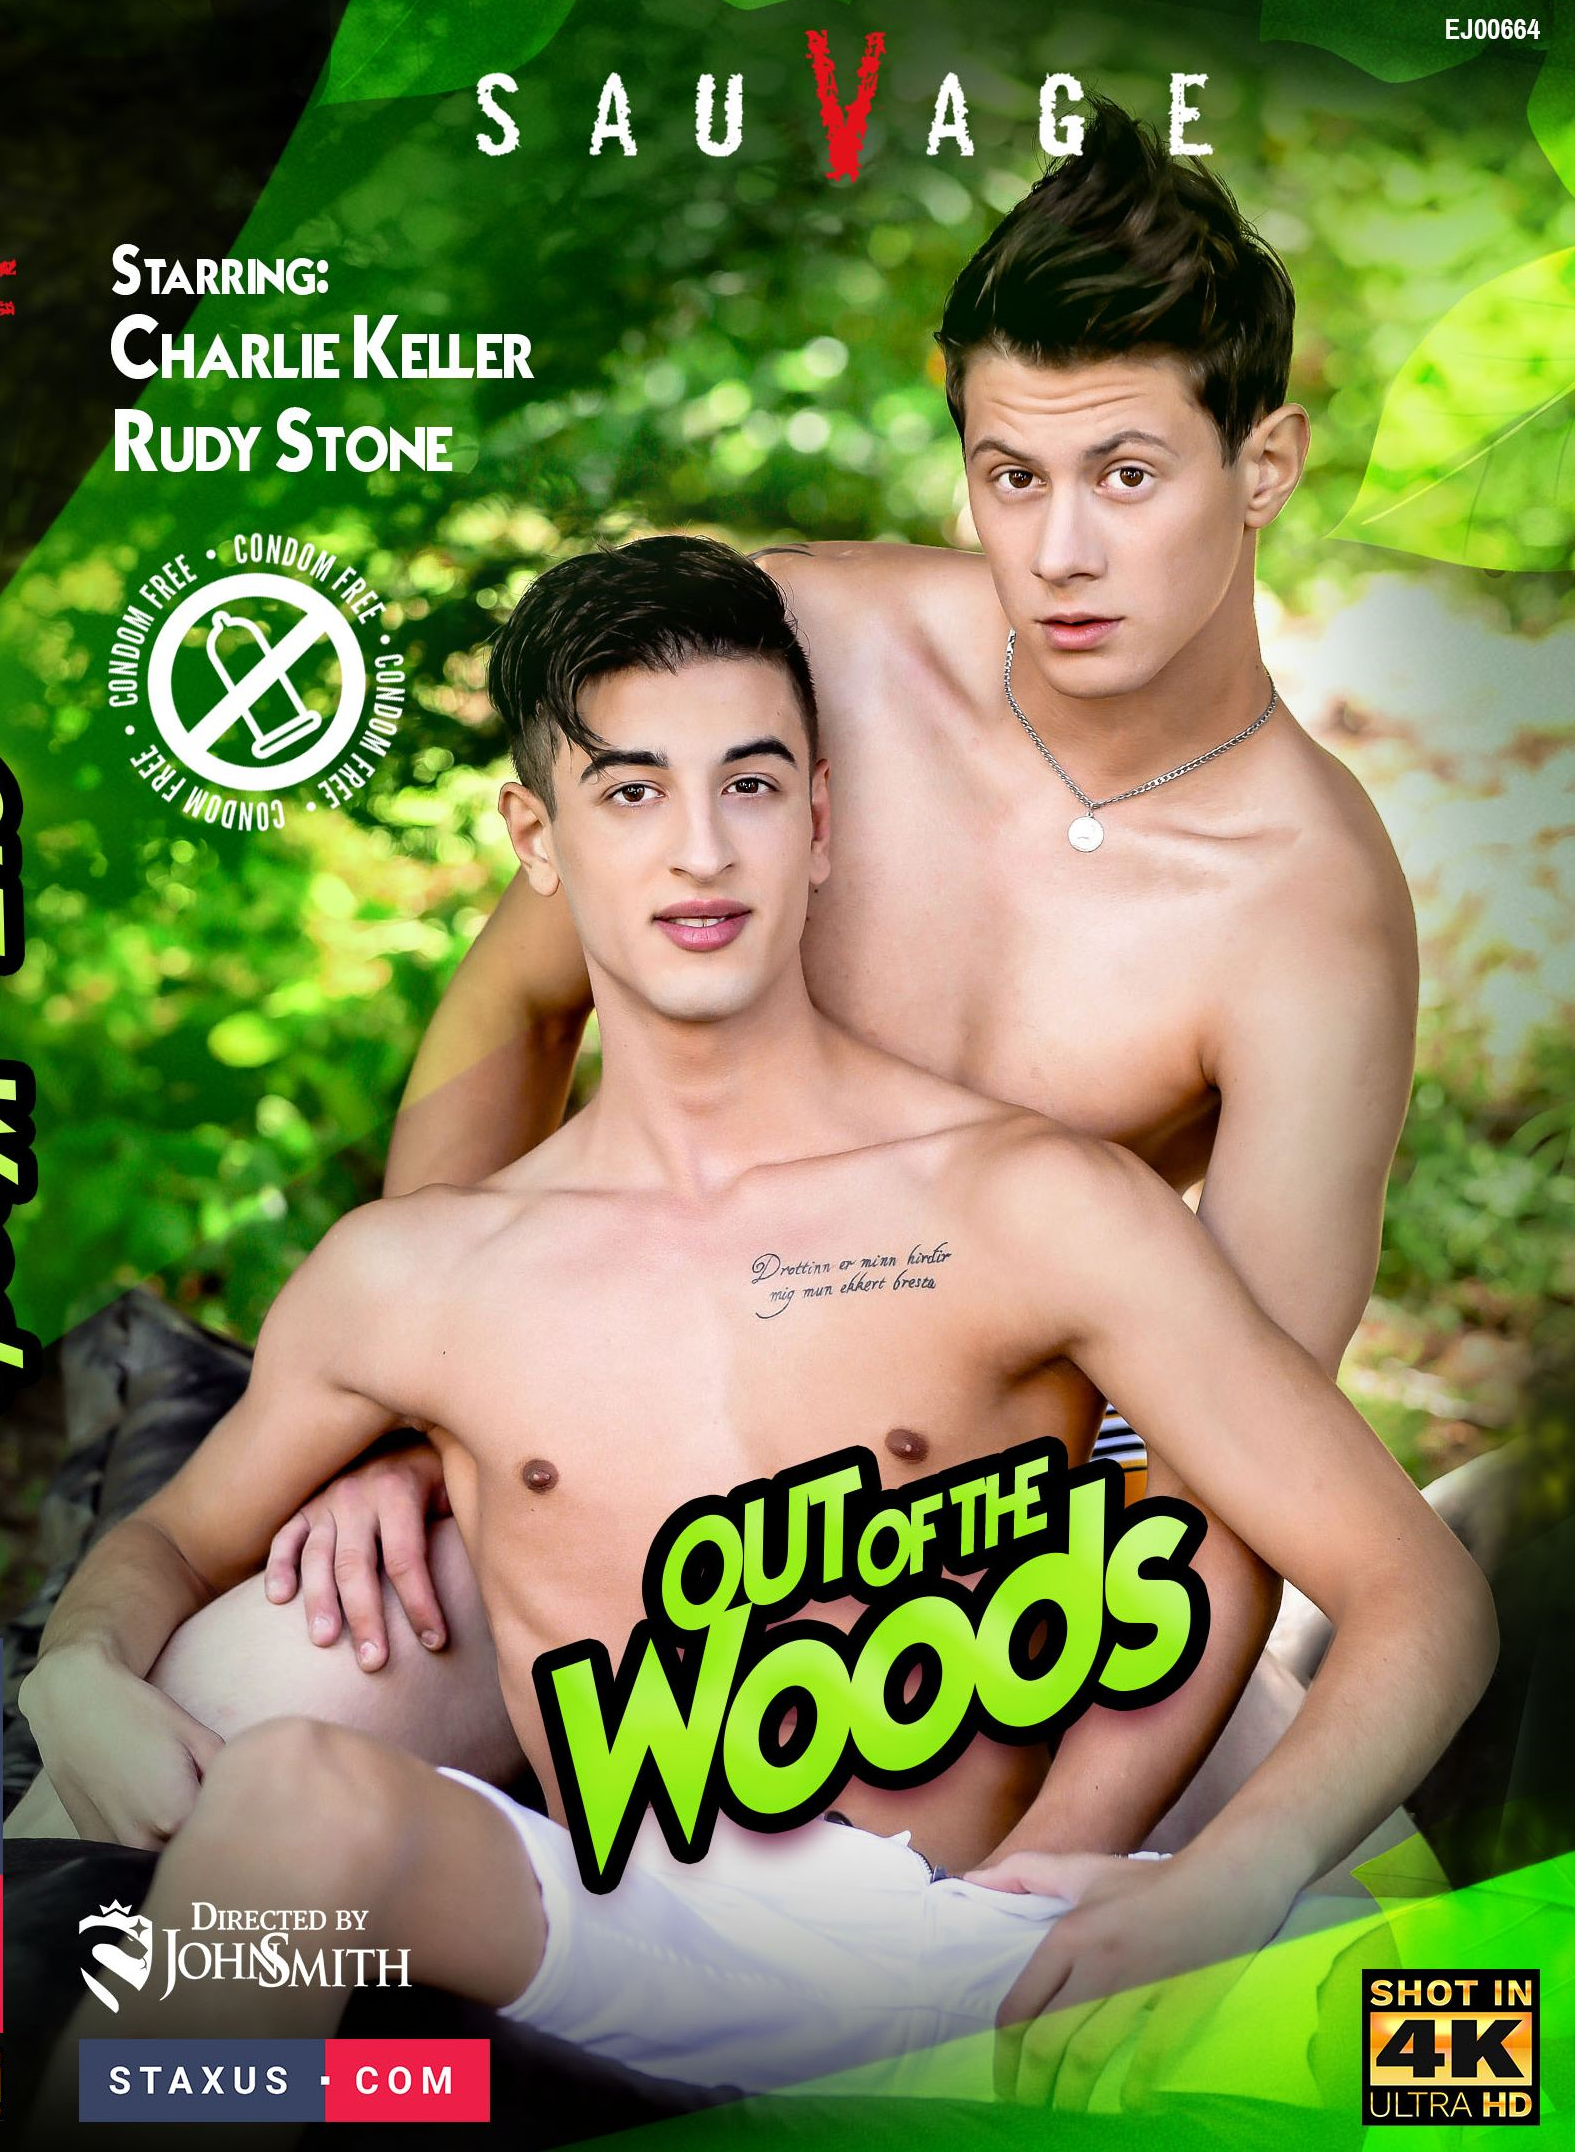 """Out of the Woods"" now available on DVD!"